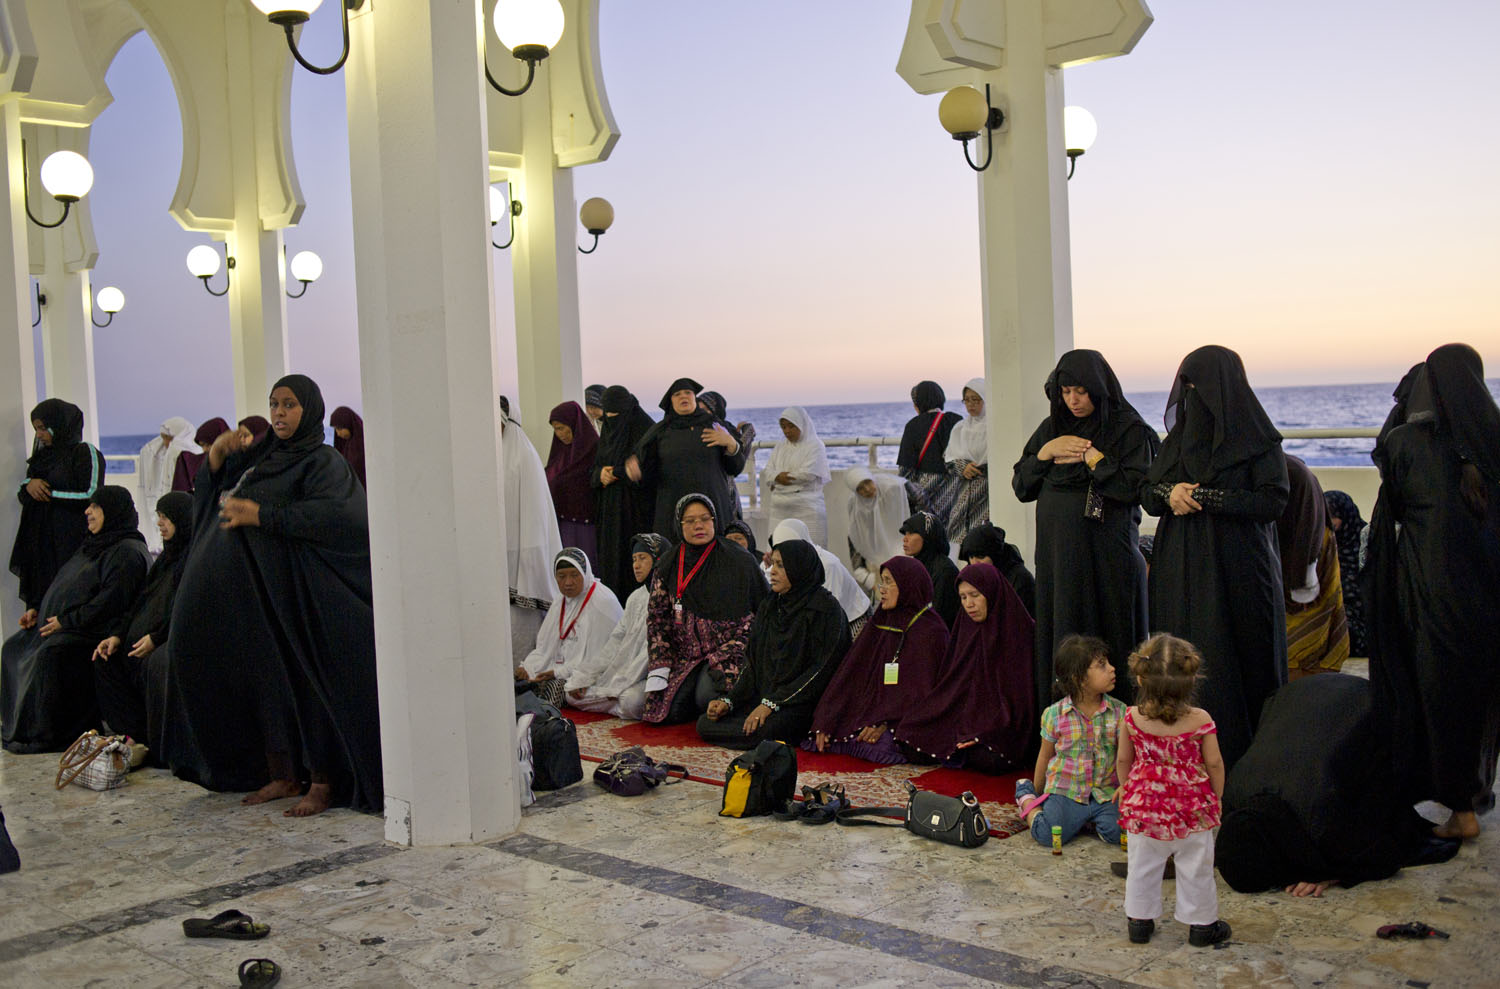 Saudi women pray alongside a group of Indonesian tourists along the corniche in Jeddah, Saudi Arabia, June 14, 2011.  Saudi Arabia is governed by Sharia Law, rule according to Islam, and religion is ever present in society across the country.